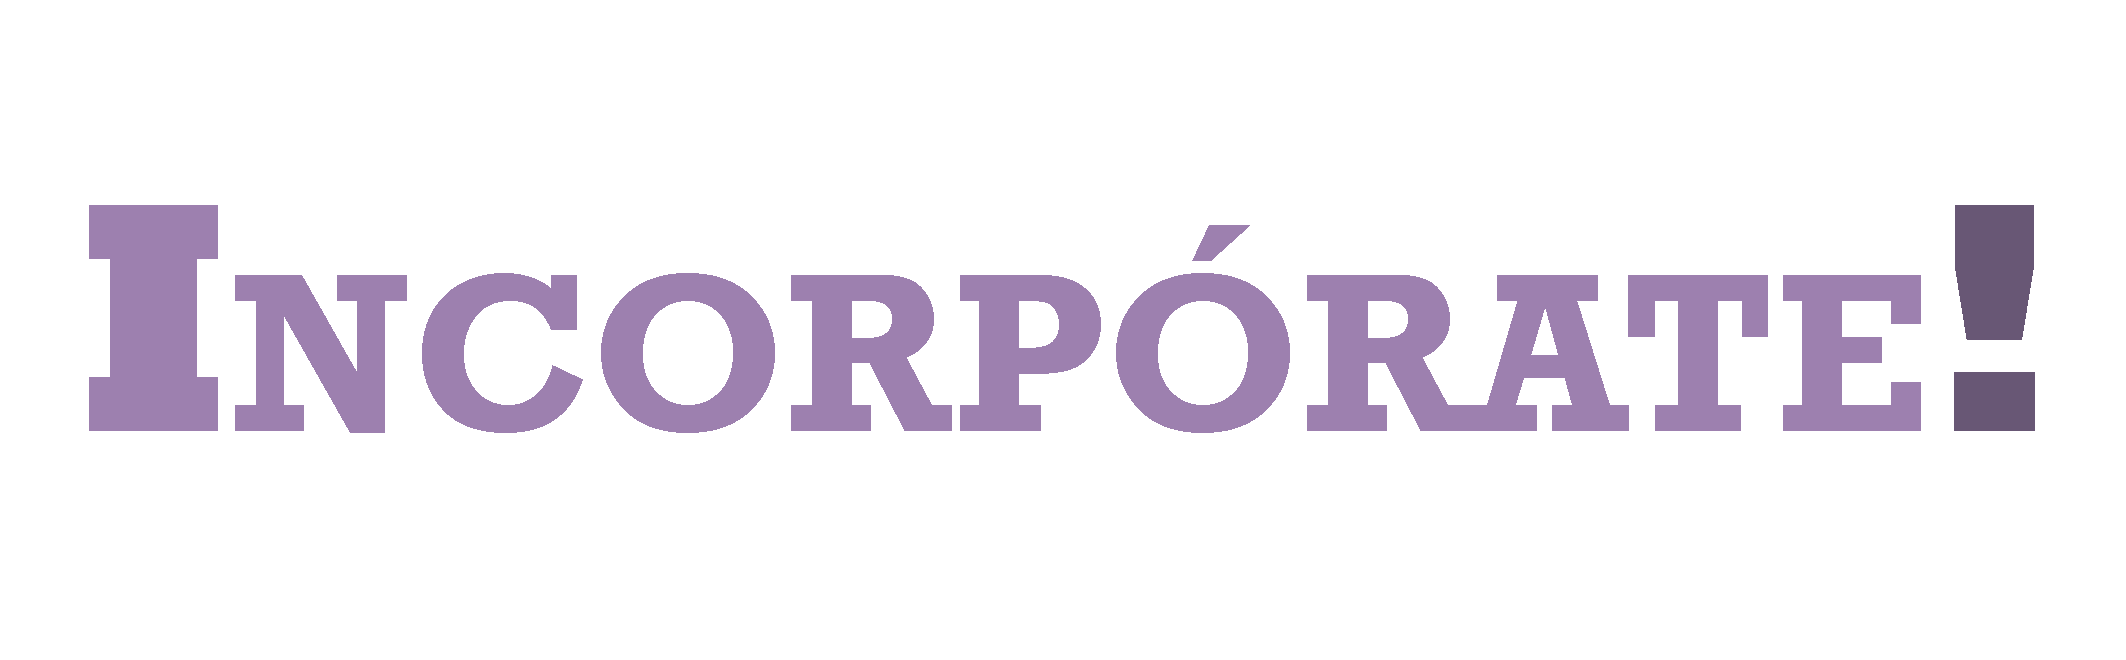 INCORPORATE-2017-logo